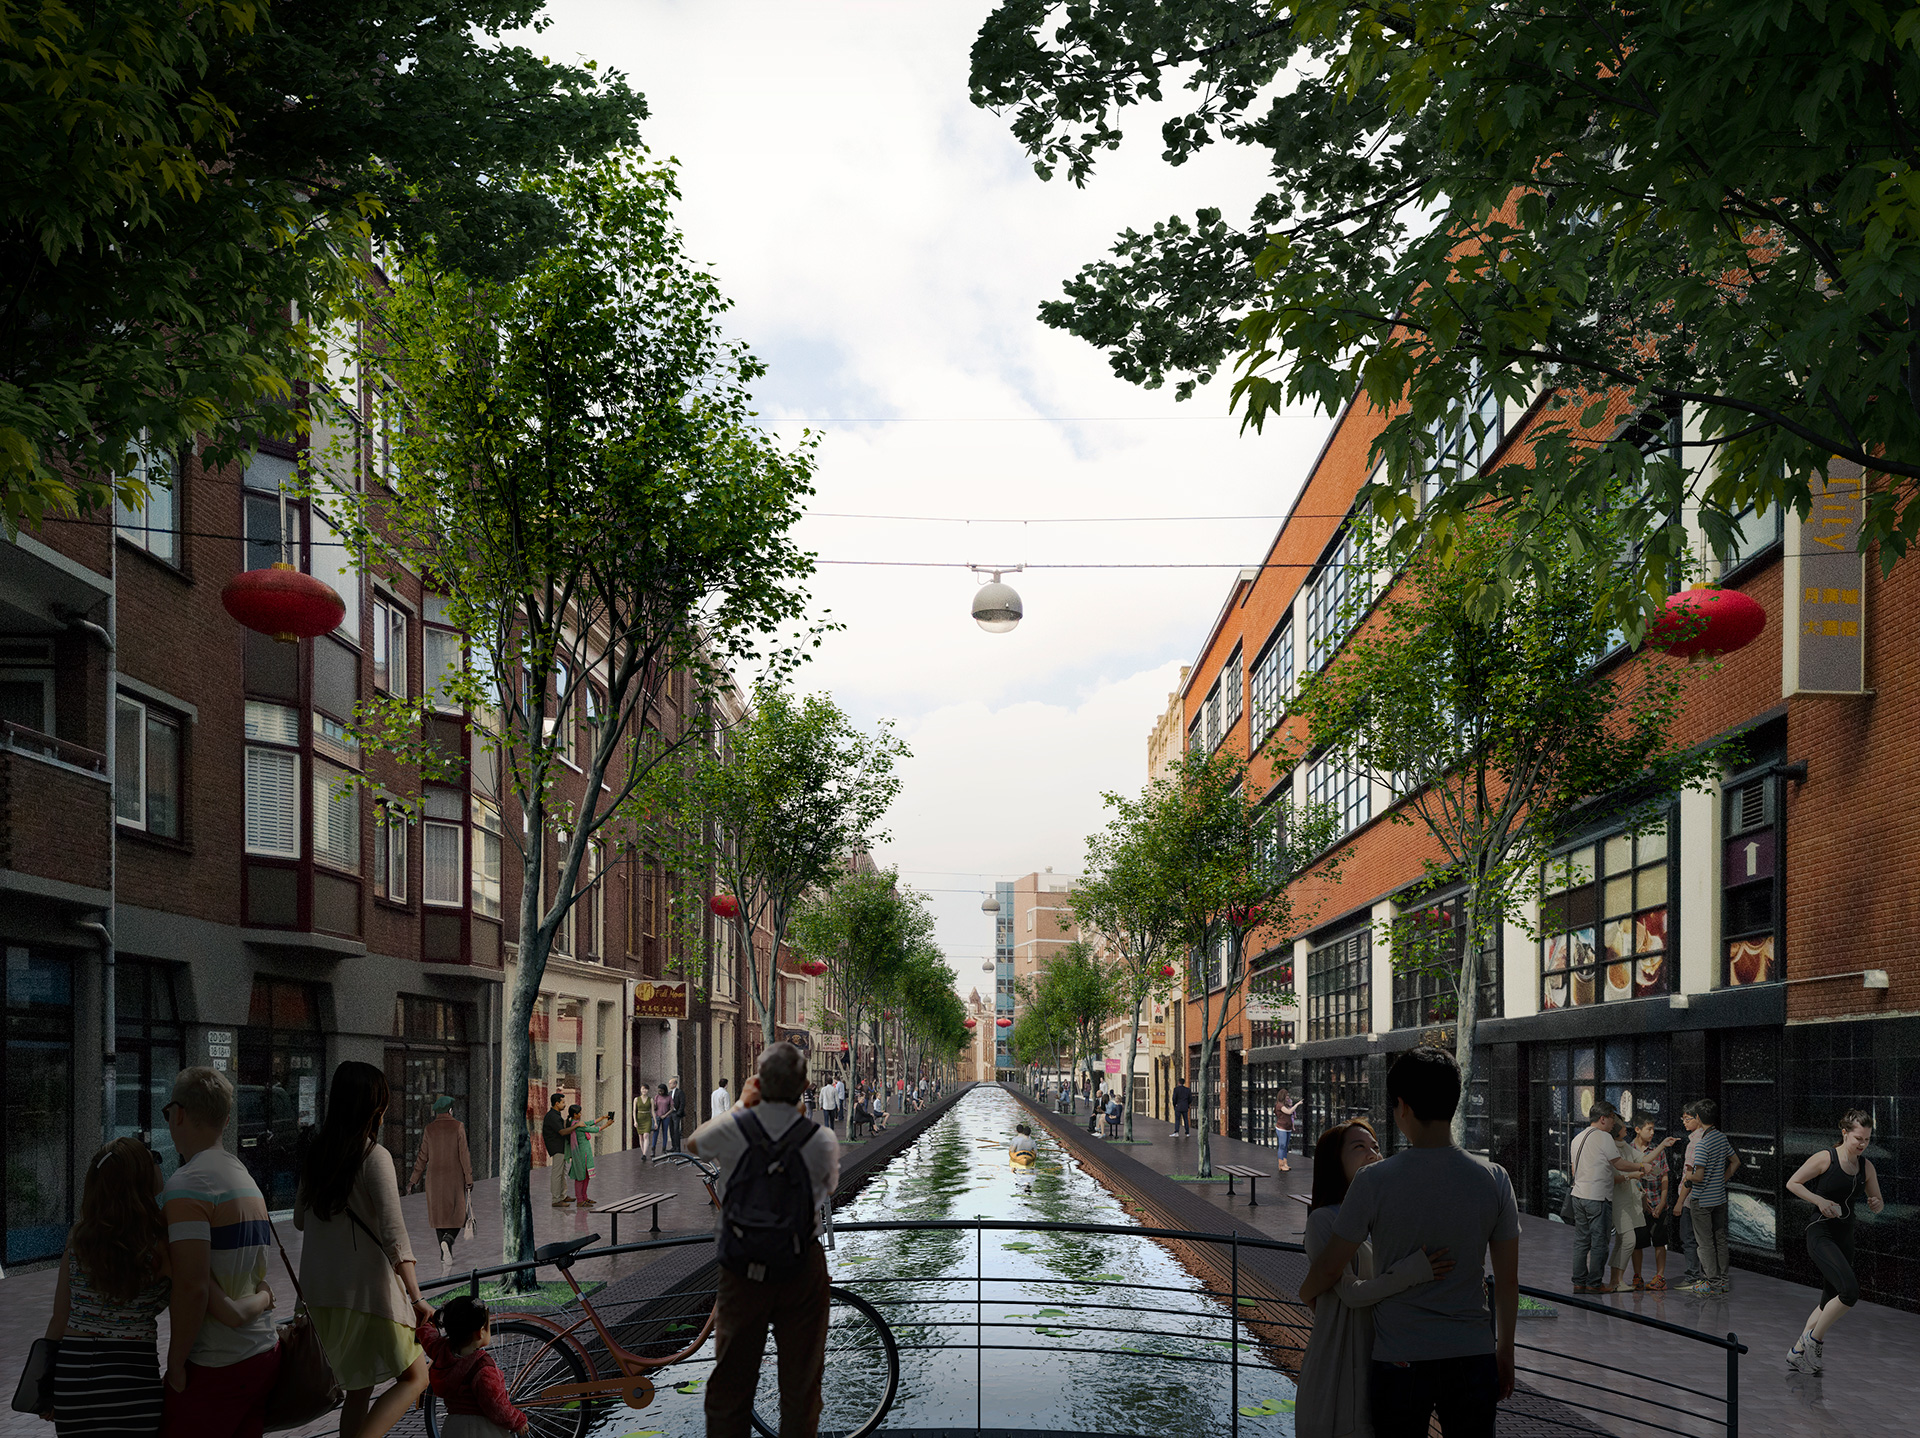 Gedemptegracht - Proposed | MVRDV| Hague Canals| STIR